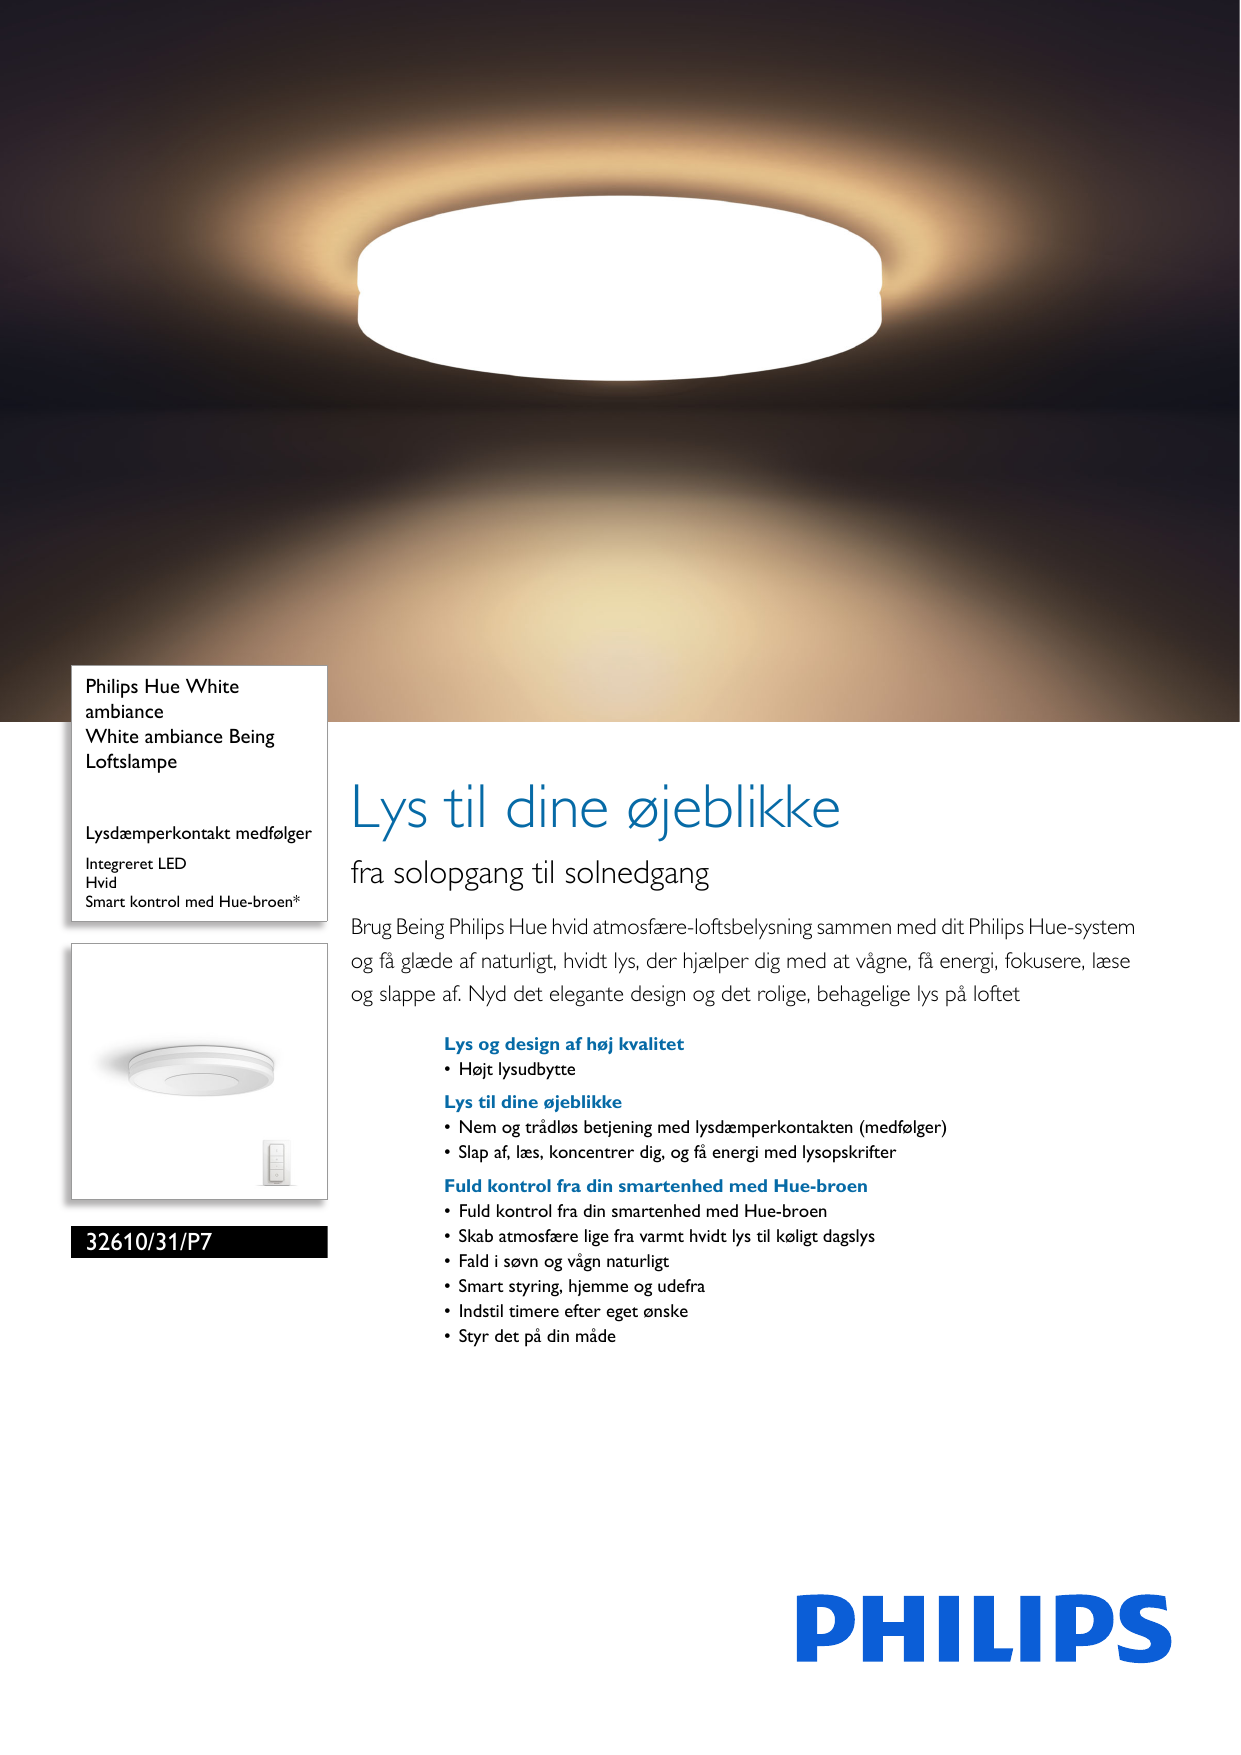 71540829d2a Philips 32610/31/P7 3261031P7 White Ambiance Being Loftslampe User Manual  Pss Dandk